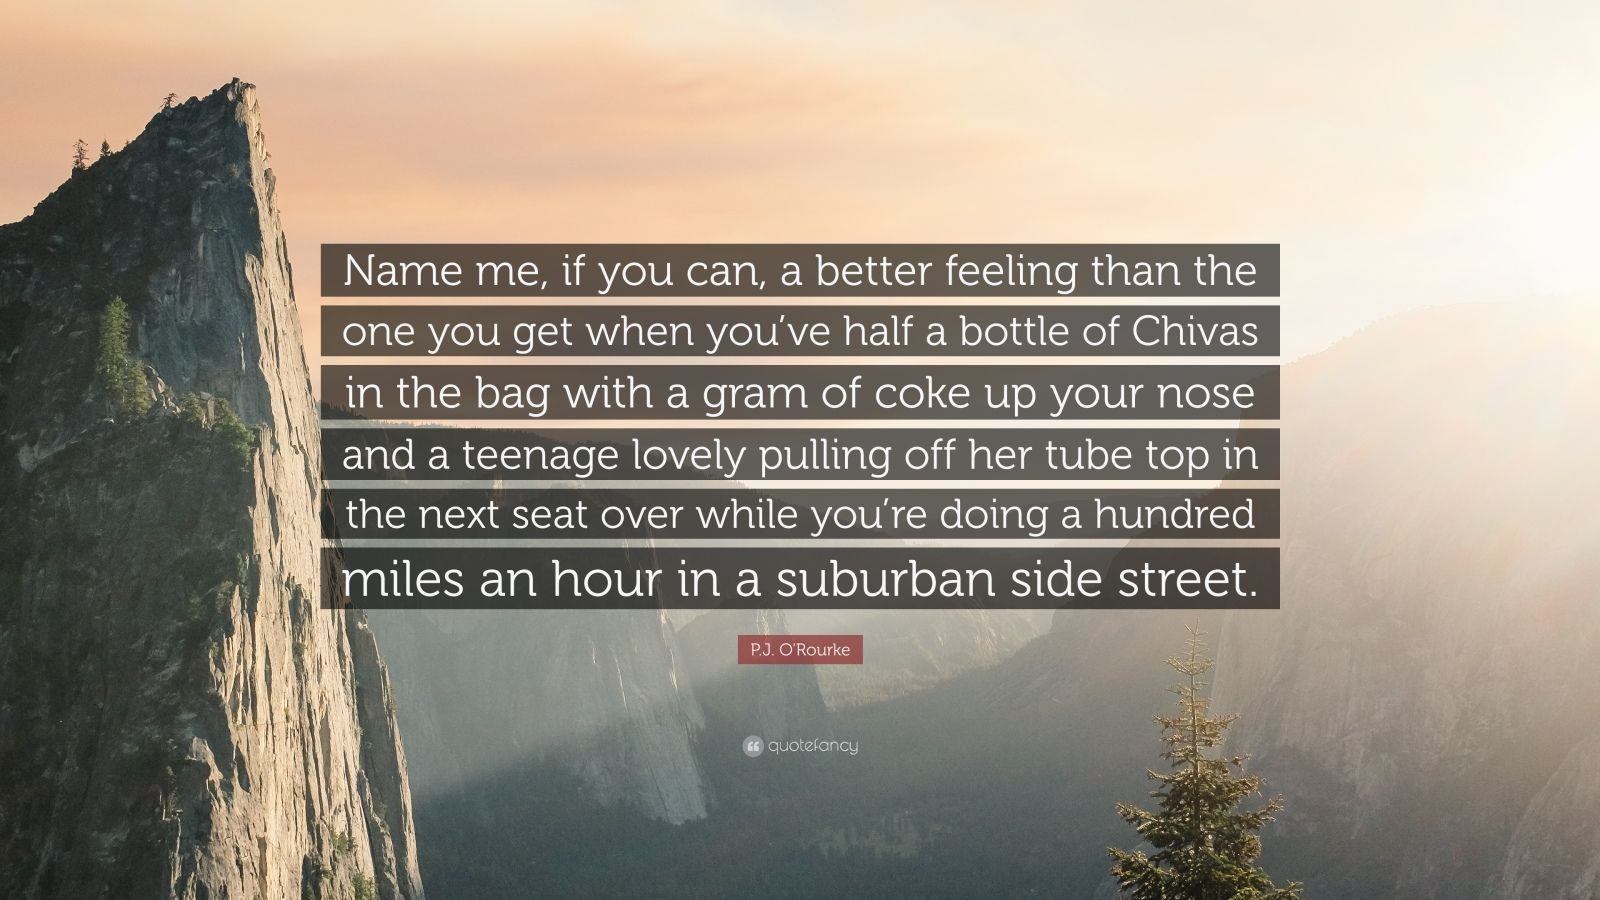 """P.J. O'Rourke Quote: """"Name me, if you can, a better feeling than the one you get when you've half a bottle of Chivas in the bag with a gram of coke up your nose and a teenage lovely pulling off her tube top in the next seat over while you're doing a hundred miles an hour in a suburban side street."""""""